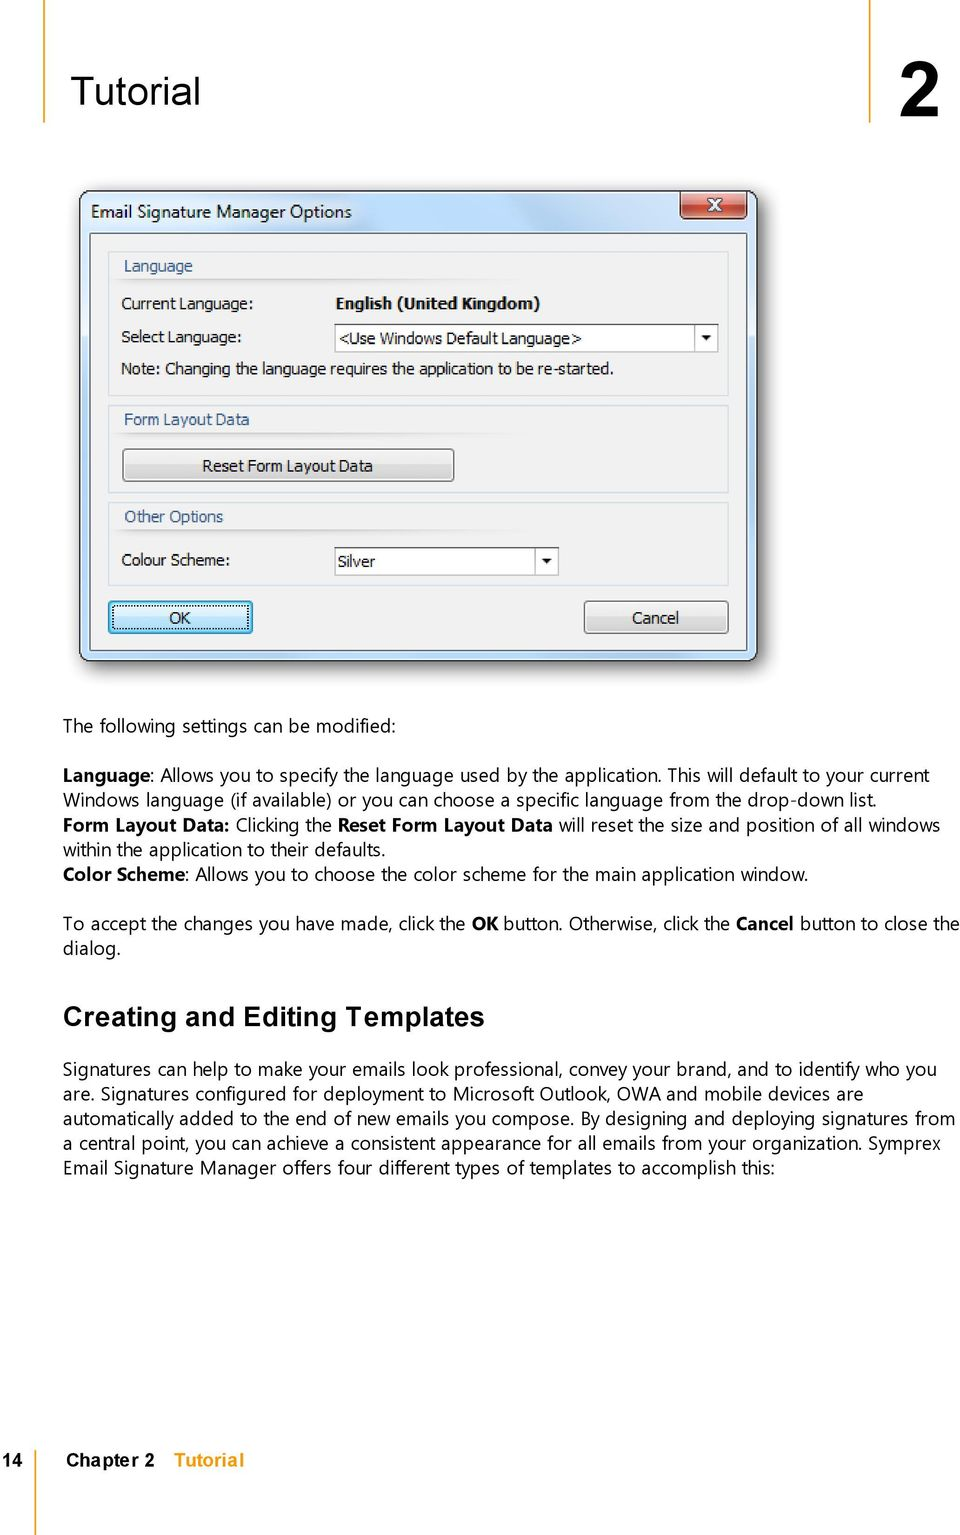 Form Layout Data: Clicking the Reset Form Layout Data will reset the size and position of all windows within the application to their defaults.